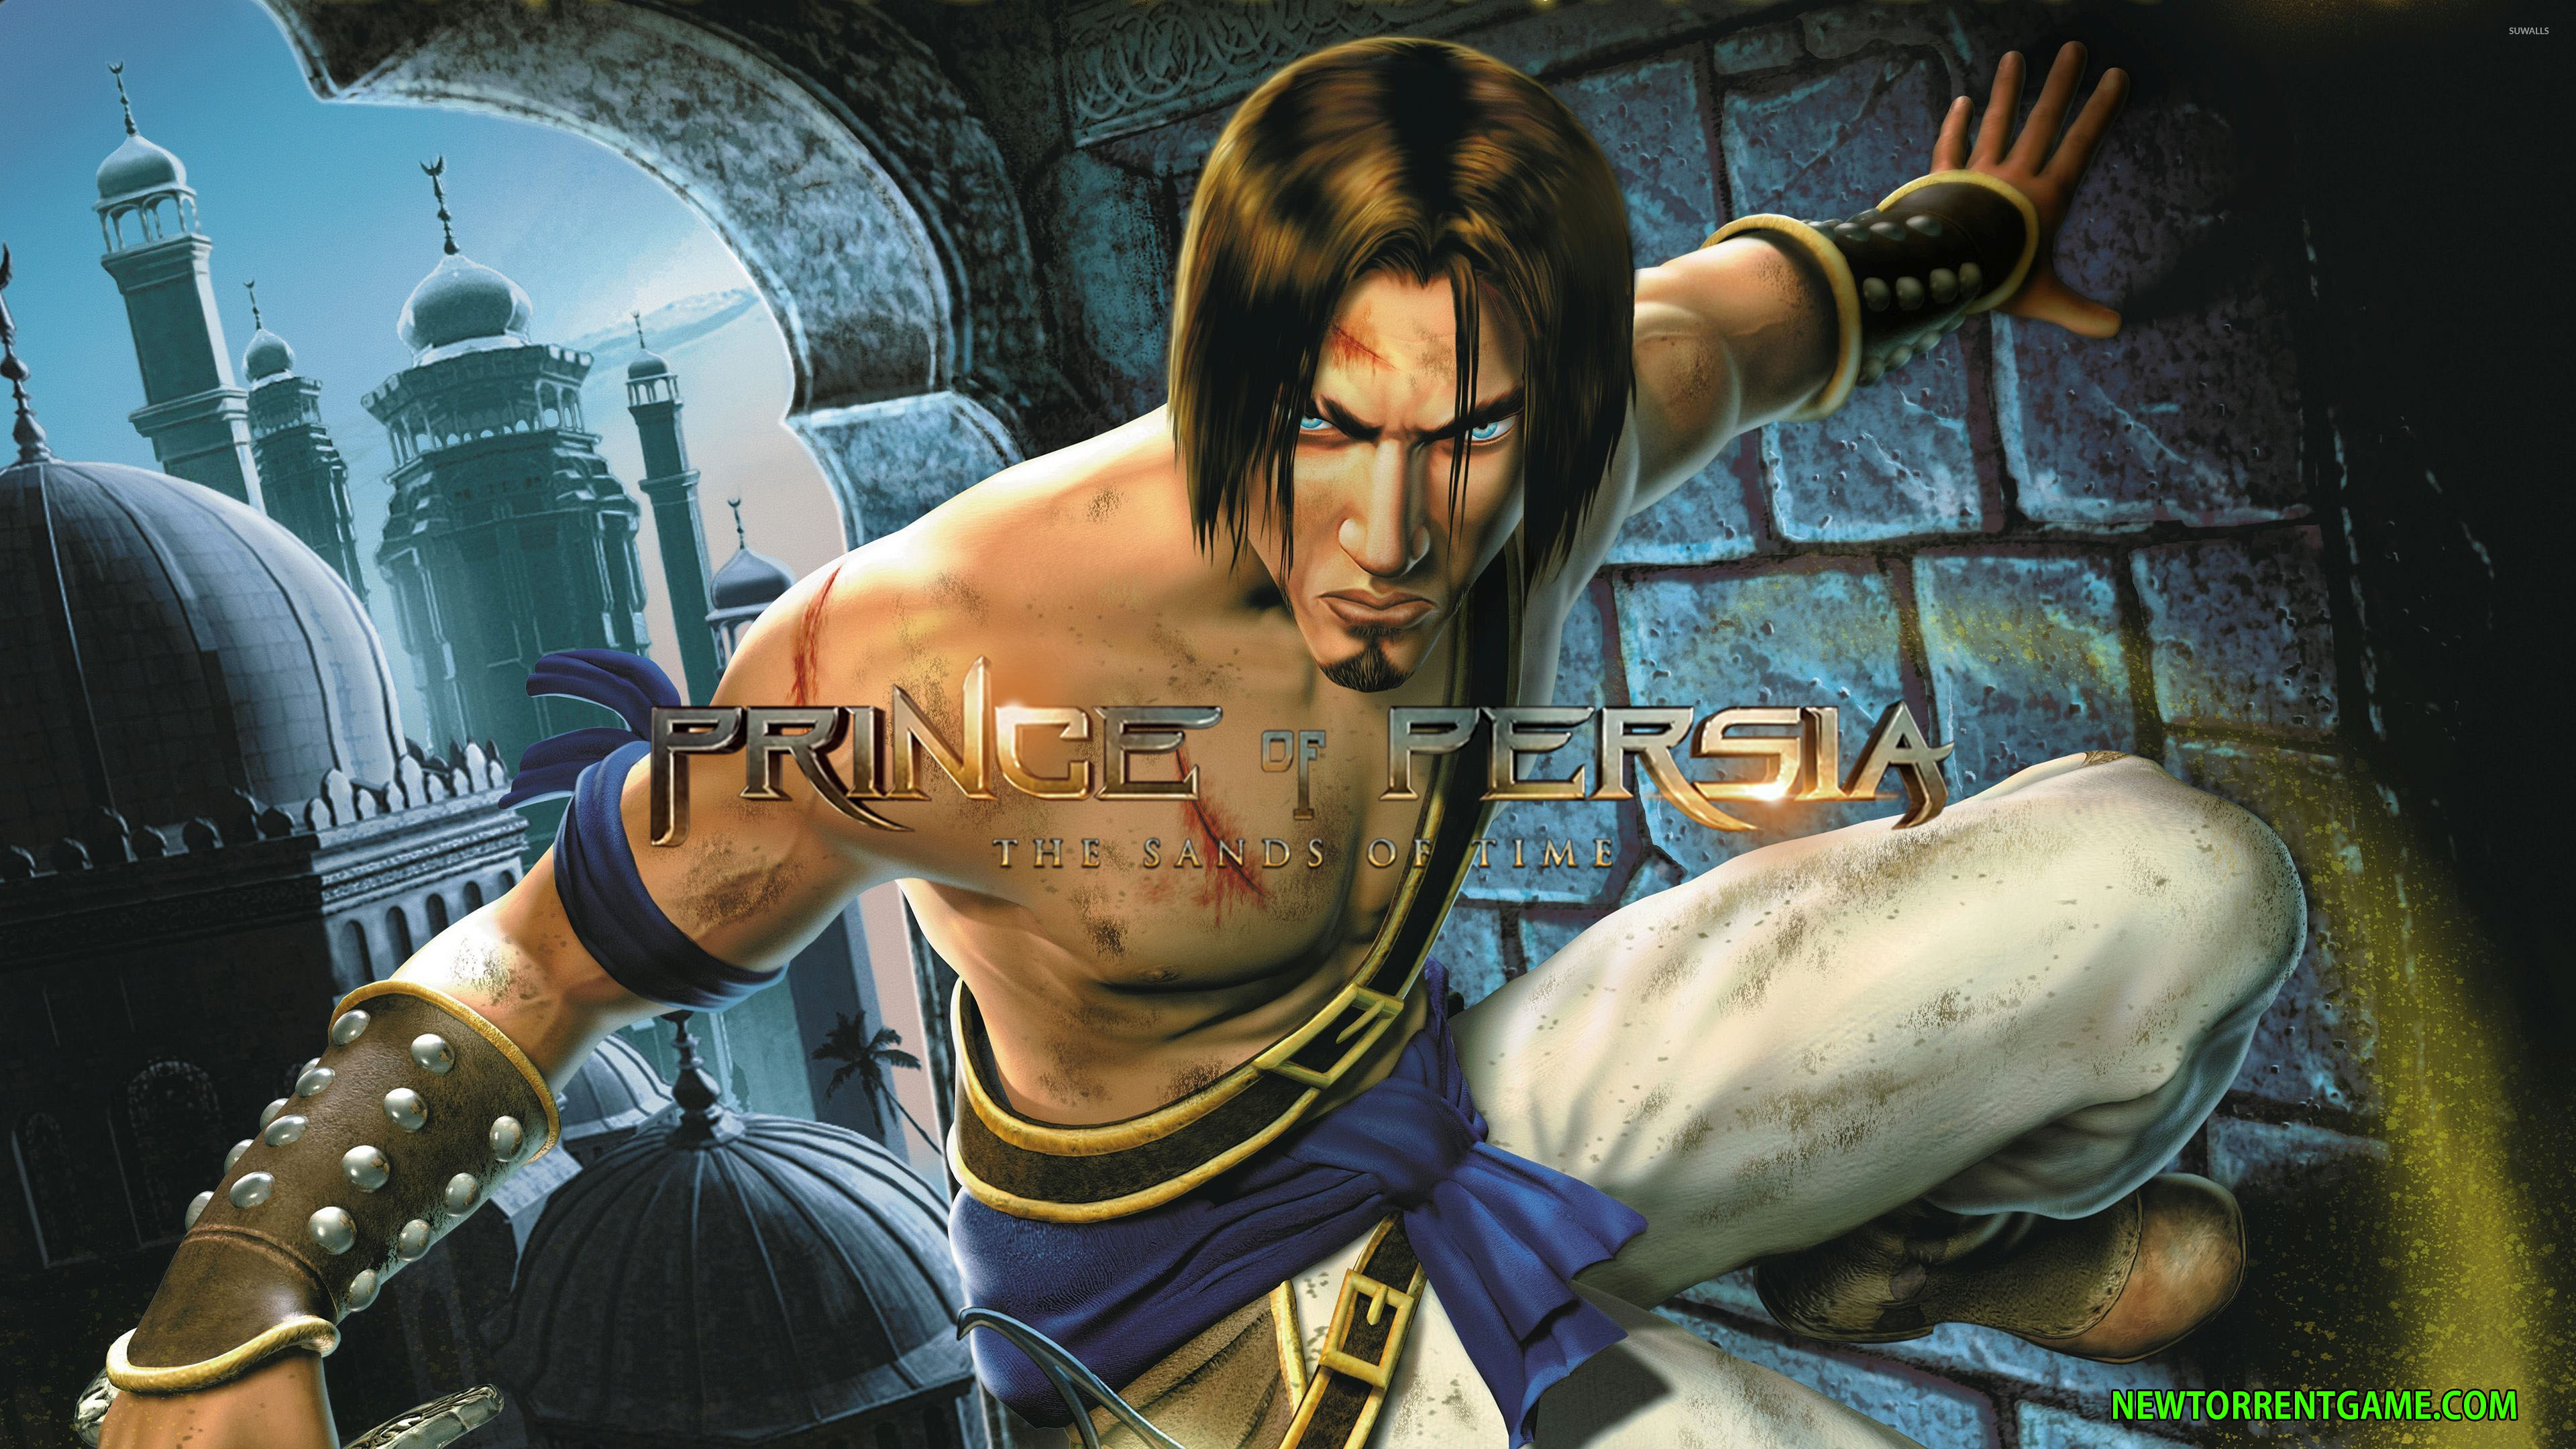 prince of persia pc game torrent